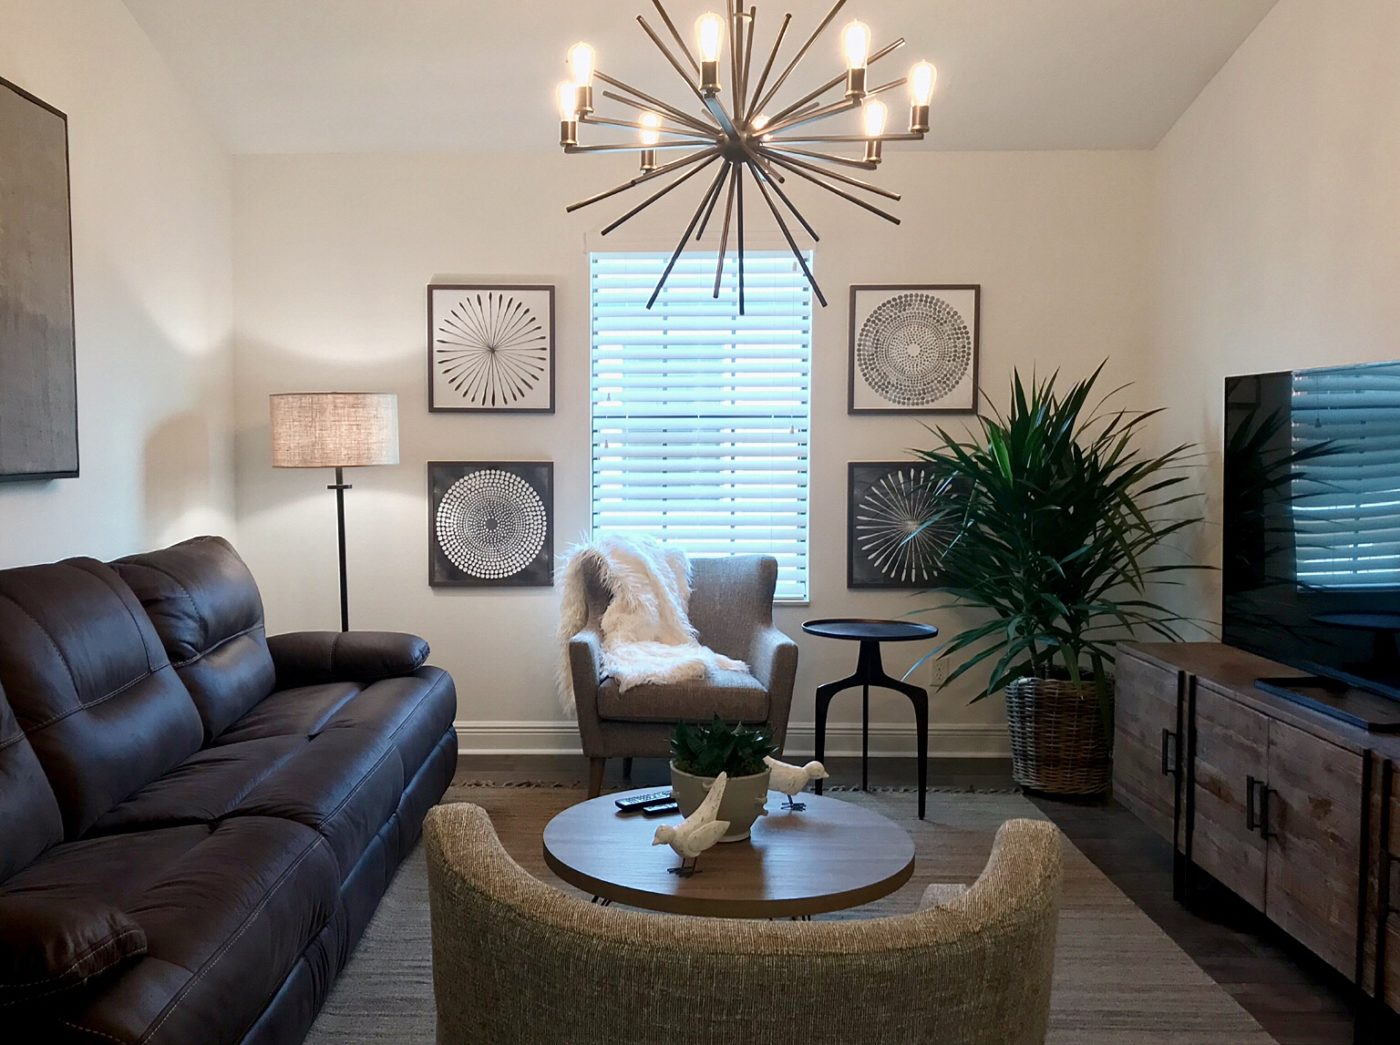 A light and bright happy space with the blinds open, white walls, and stunning overhead light fixture.